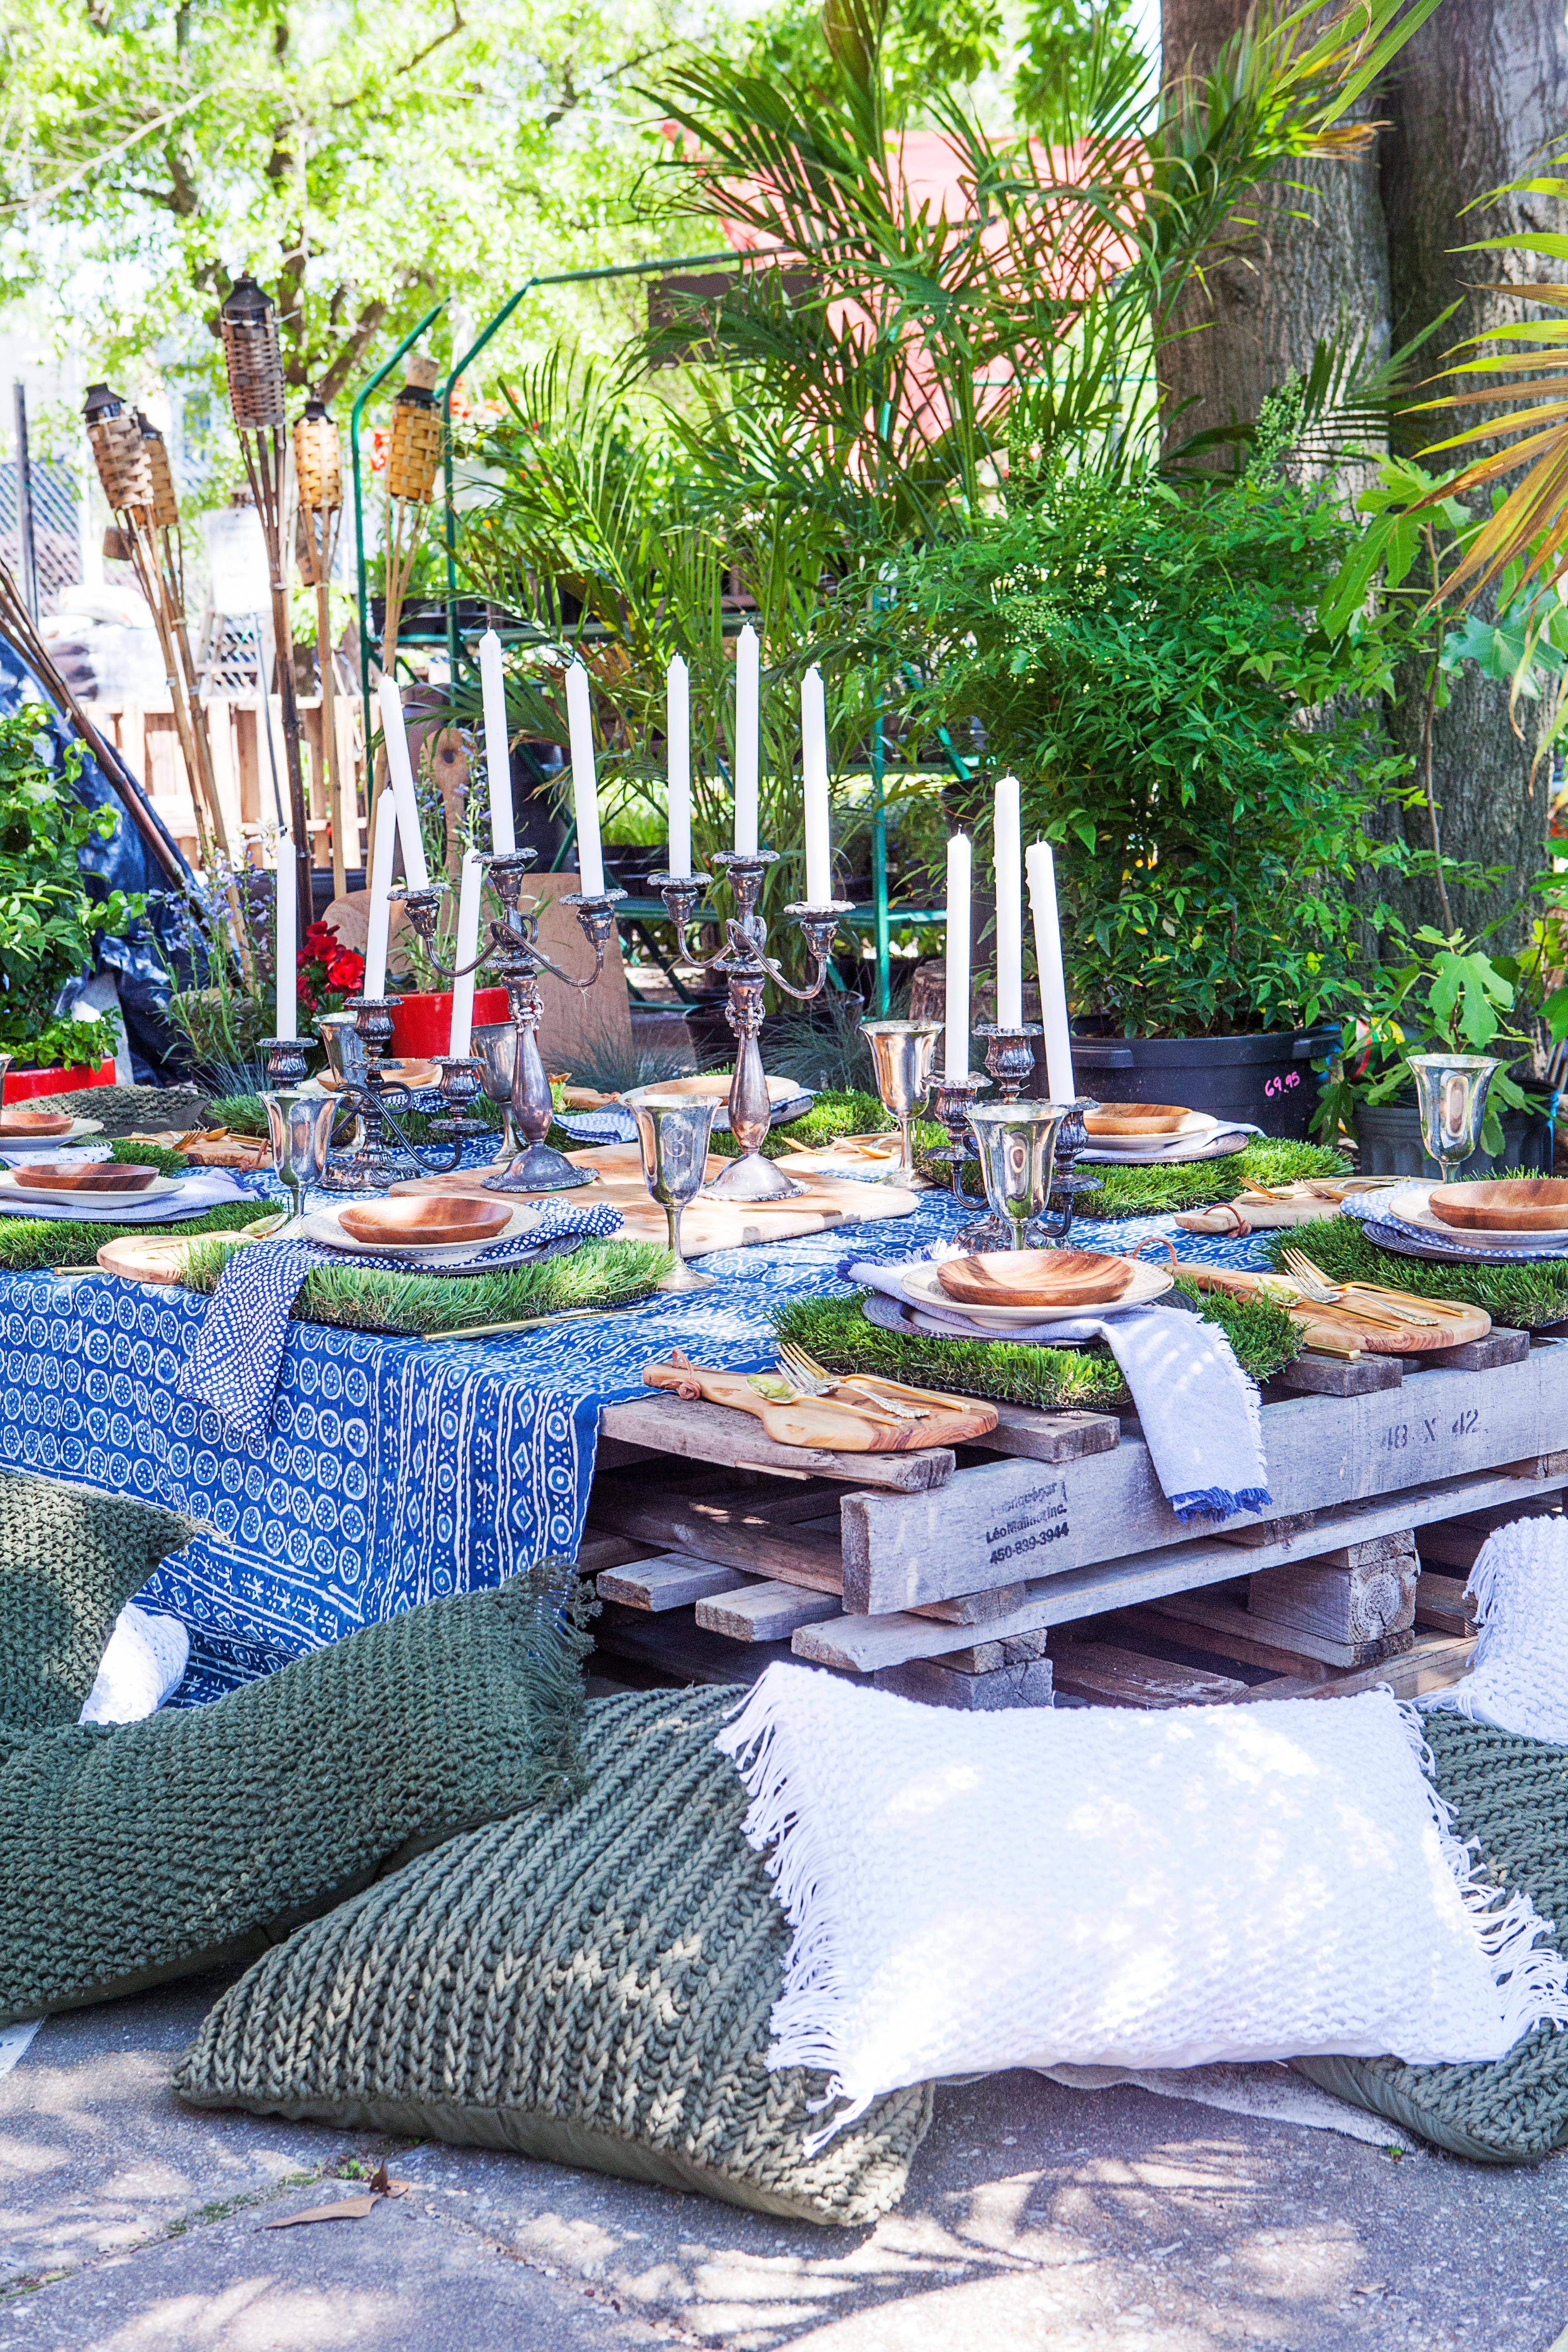 Whether it is in your backyard, in a public park or in the forest, take the time to find just the right location. This is the canvas that you embellish with tables, plates, etc.(Image: Ashley Hafstead)